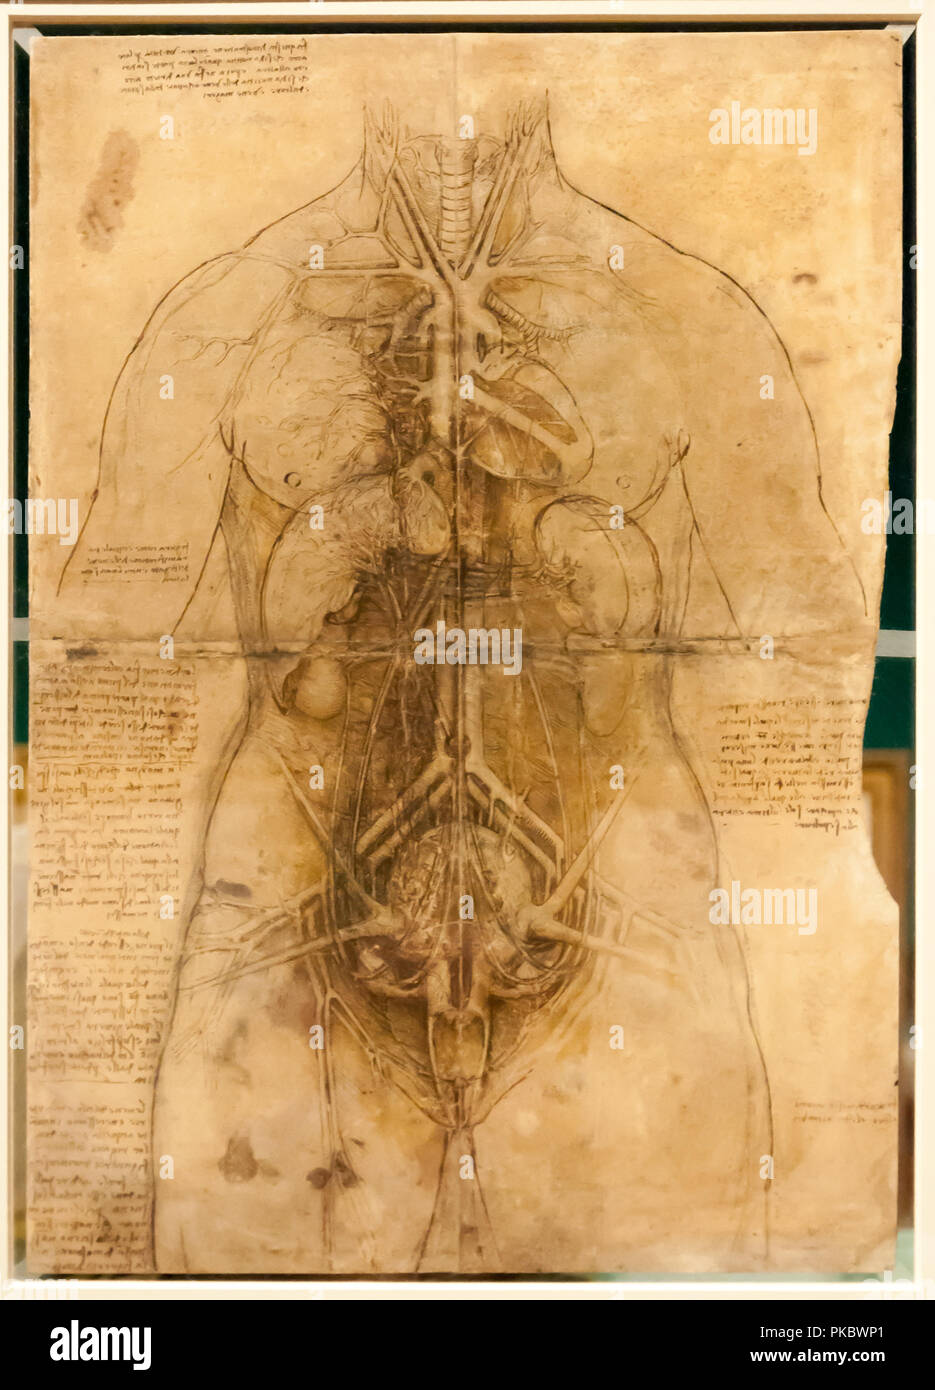 Leonardo da Vinci's human vital organs anatomical drawing at The Queen's Gallery, London, England, UK - Stock Image